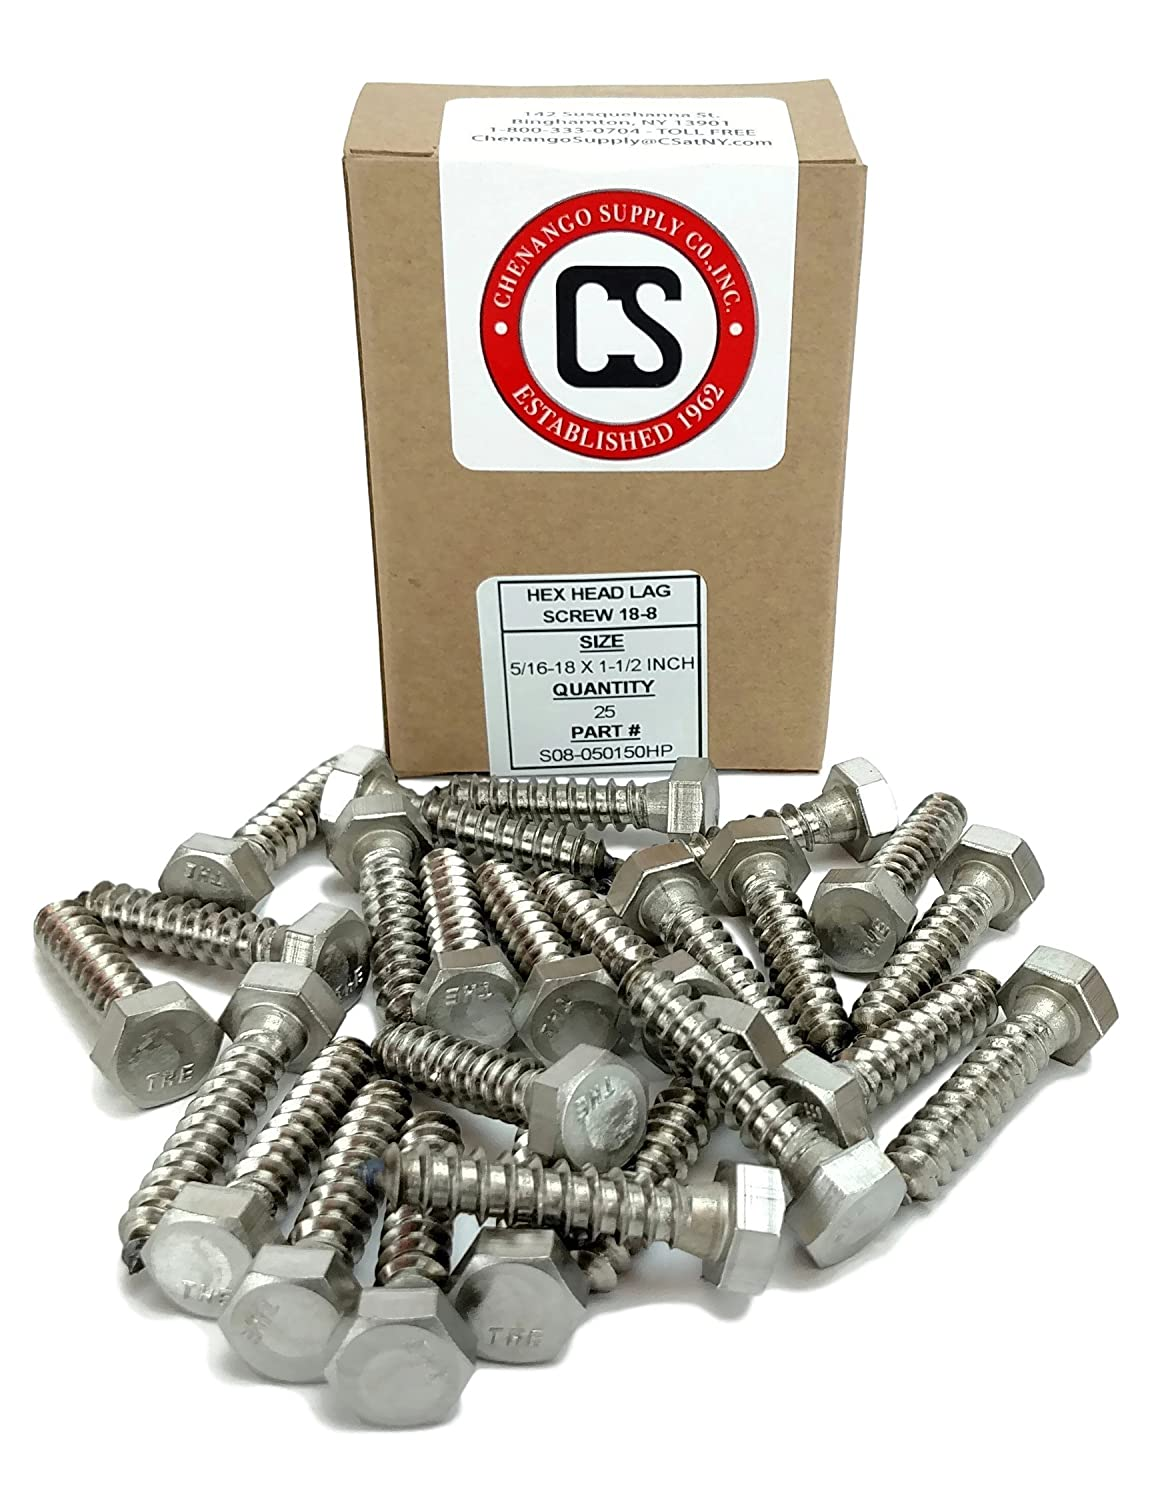 18-8 Stainless Steel 1 To 5 Lengths Available in Listing 5//16 x 1 25 pieces Stainless 5//16 x 1 Hex Lag Screw